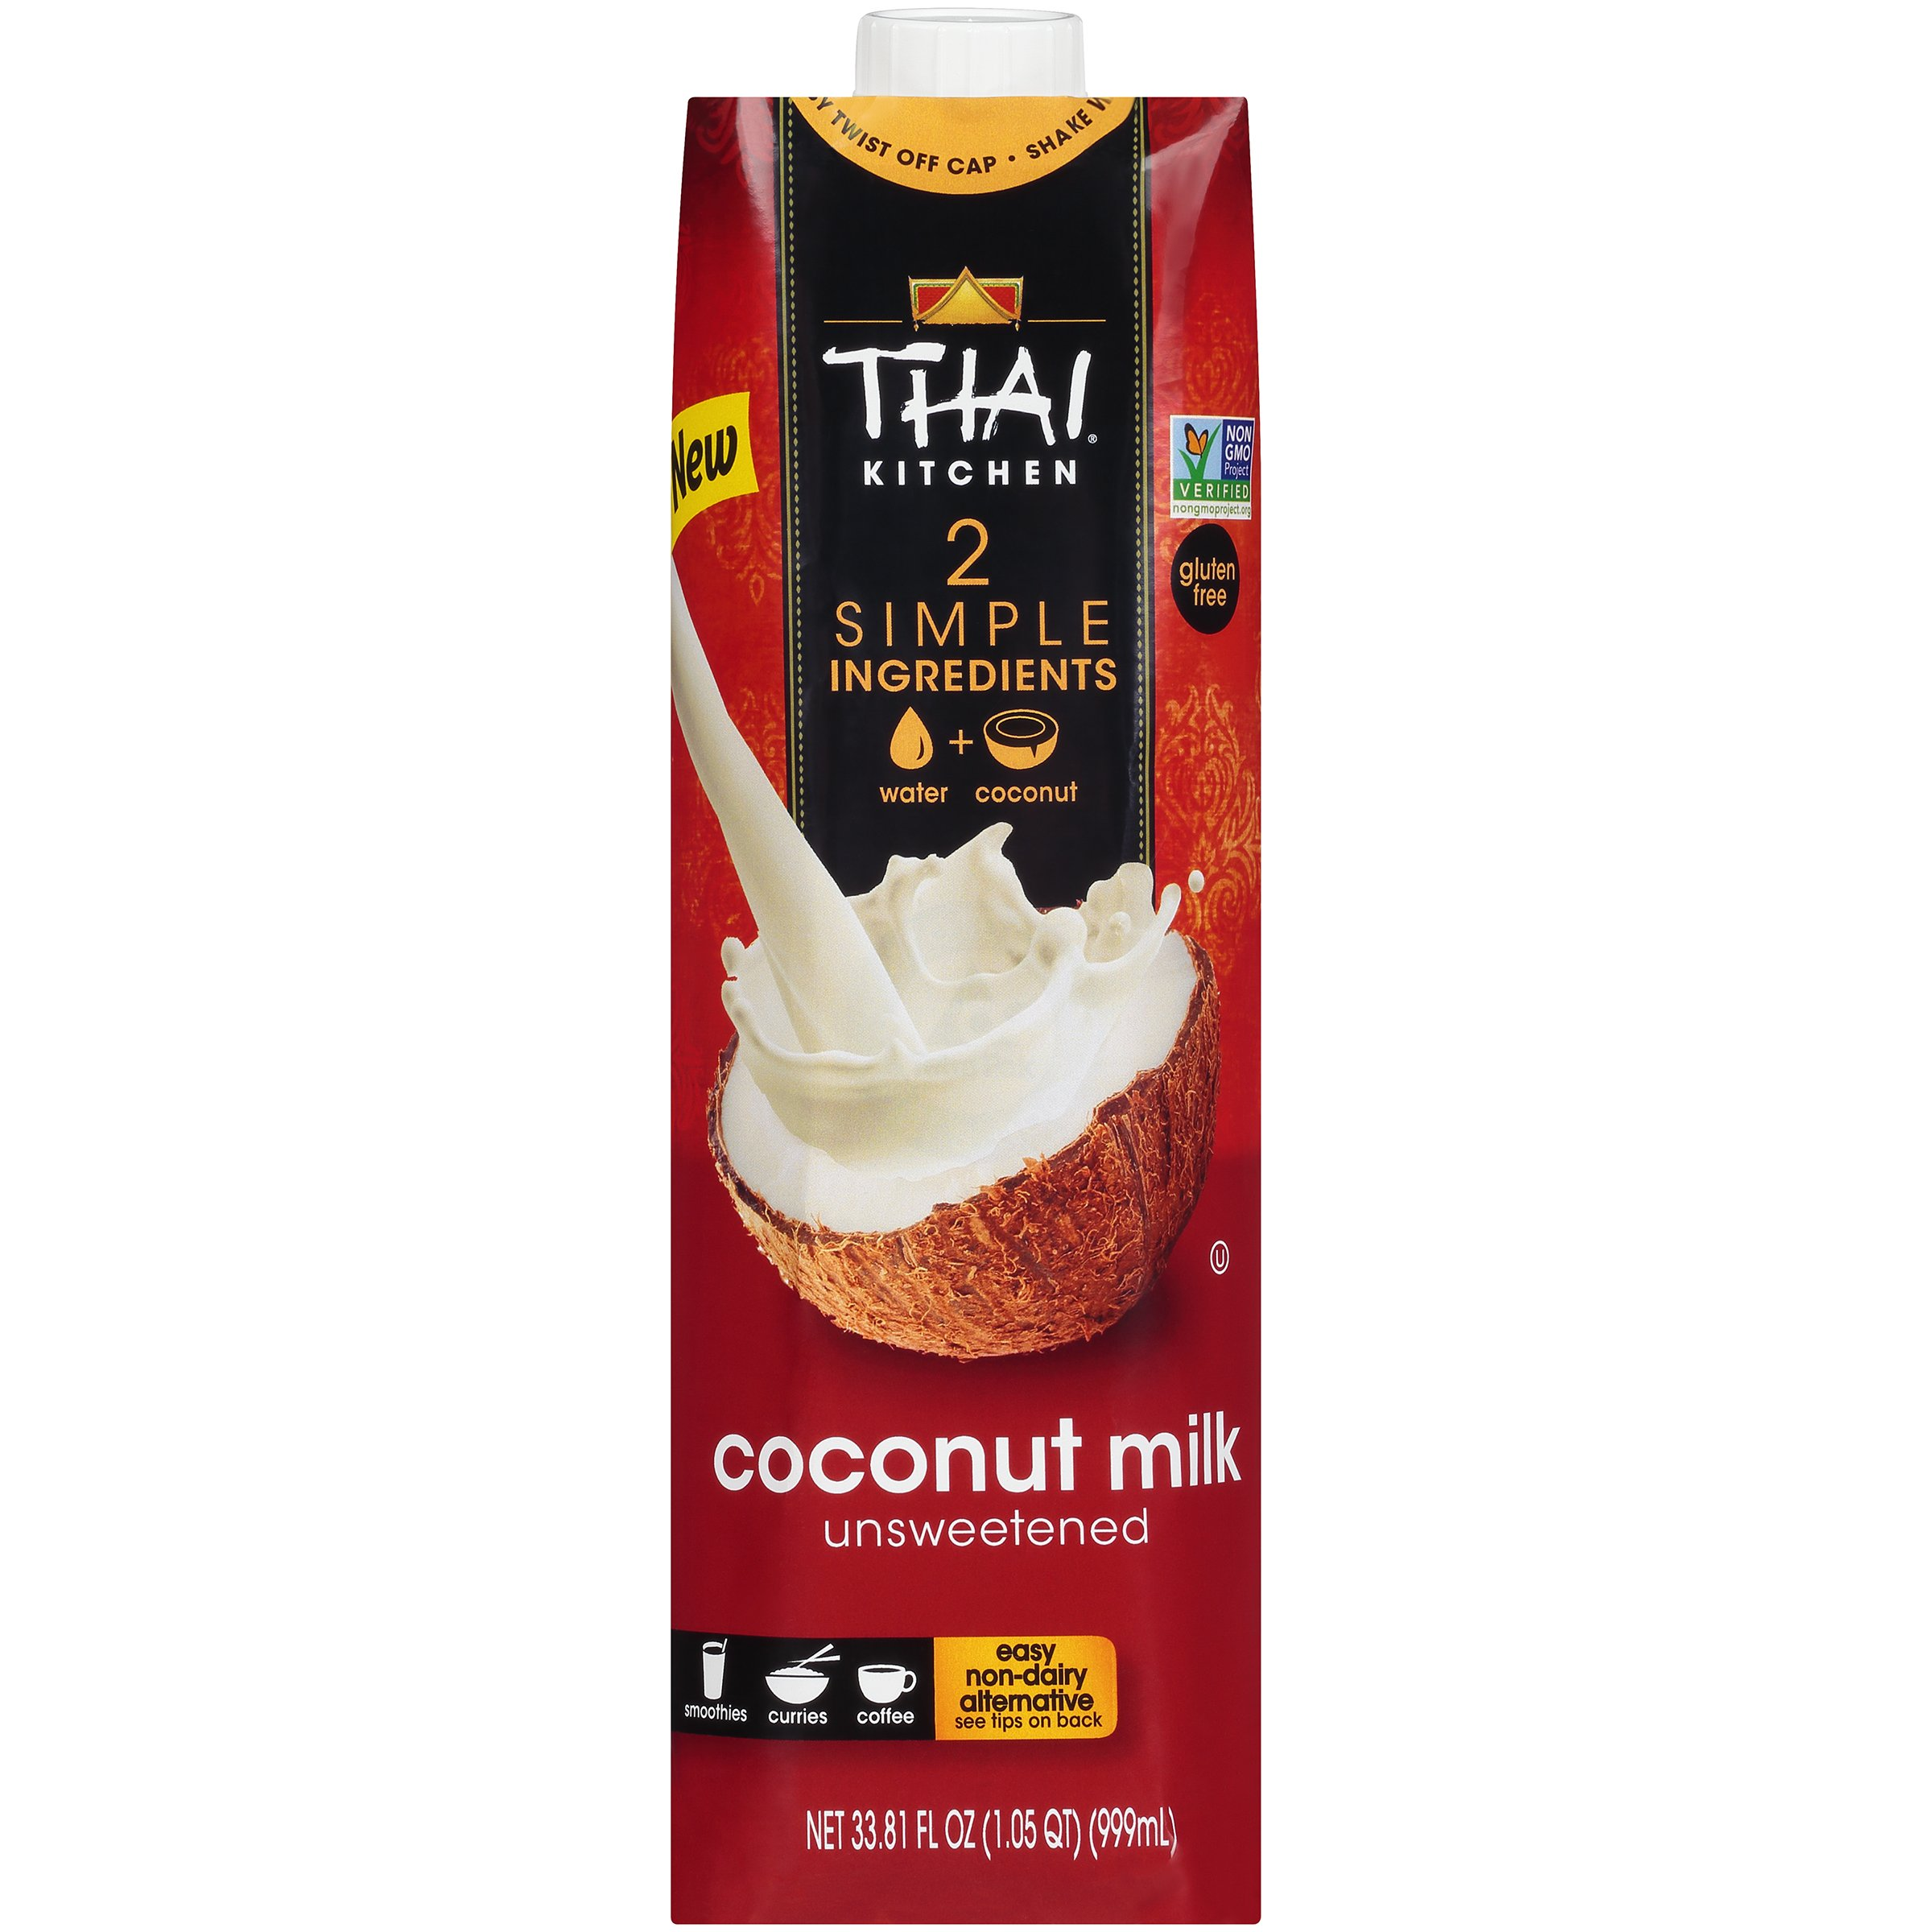 Thai Kitchen Dairy Free Coconut Milk (Resealable, Just Coconuts & Water, BPA Free Packaging, Unsweetened), 33.81 fl oz (Pack of 6)